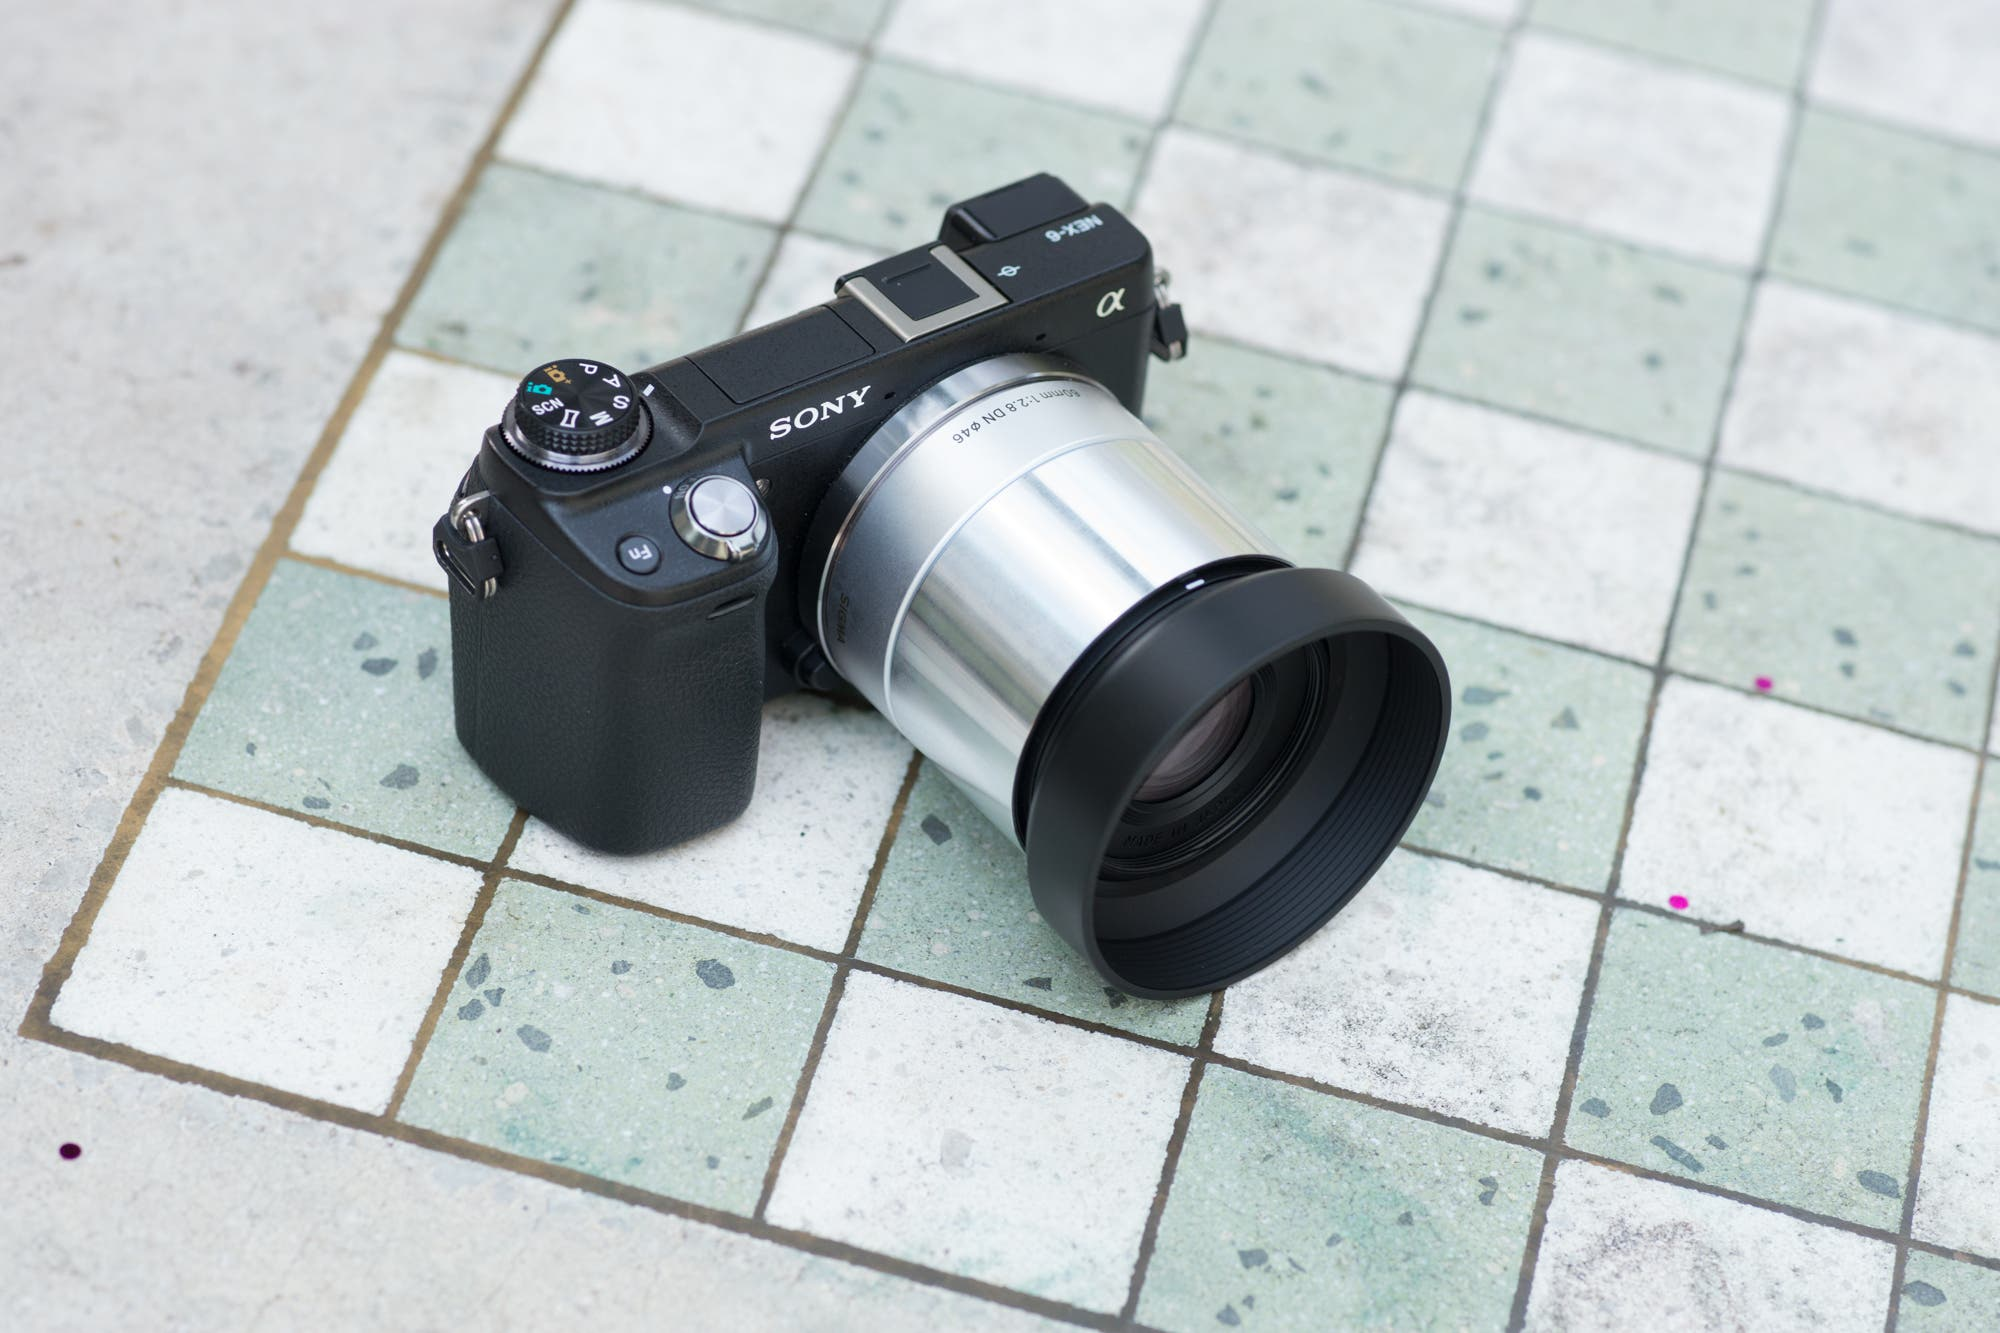 Review: Sigma 60mm f/2.8 DN (Sony NEX)